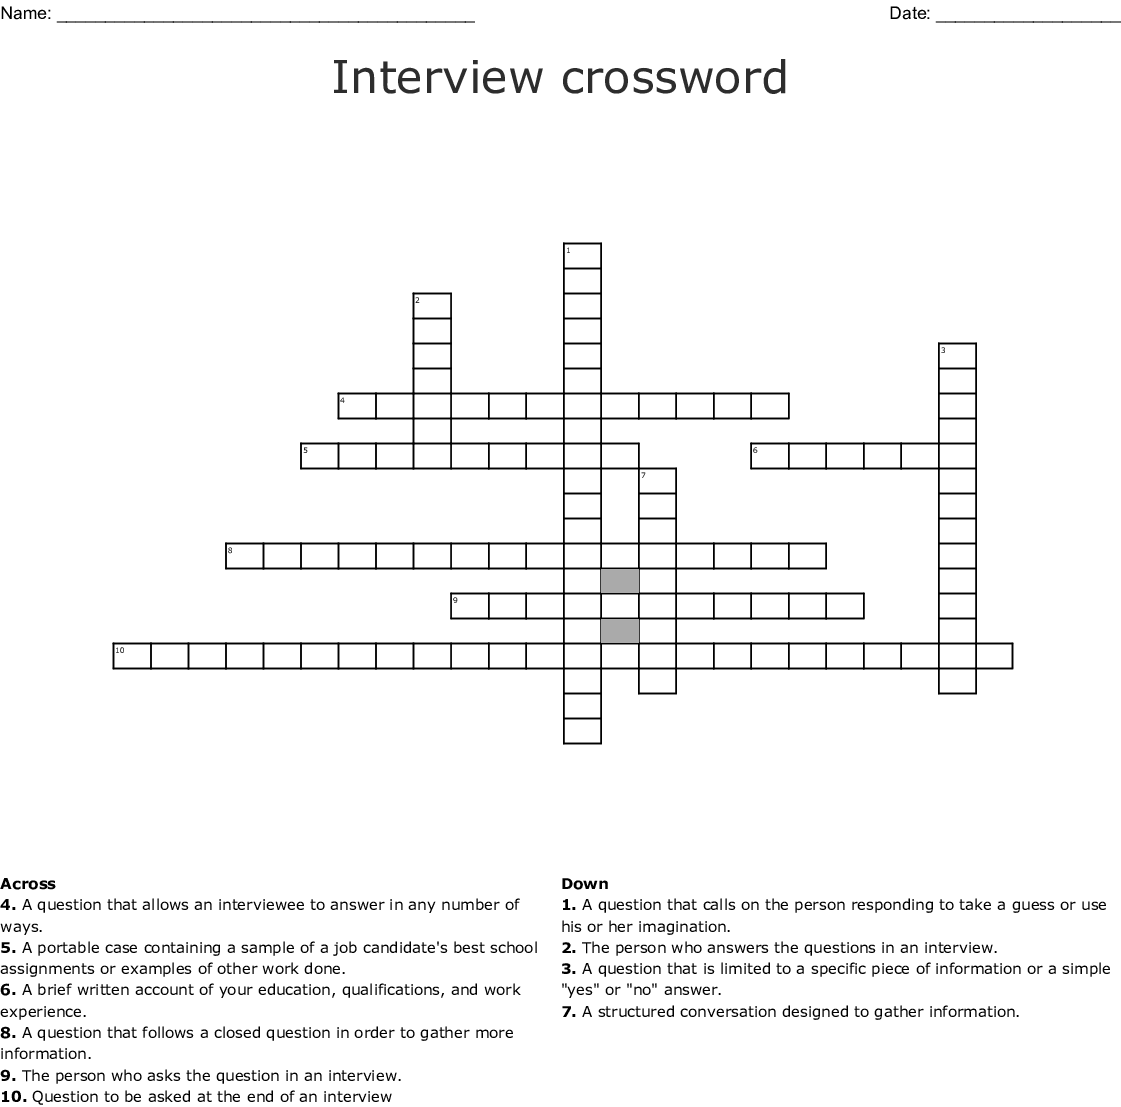 Job Interview Crossword - WordMint